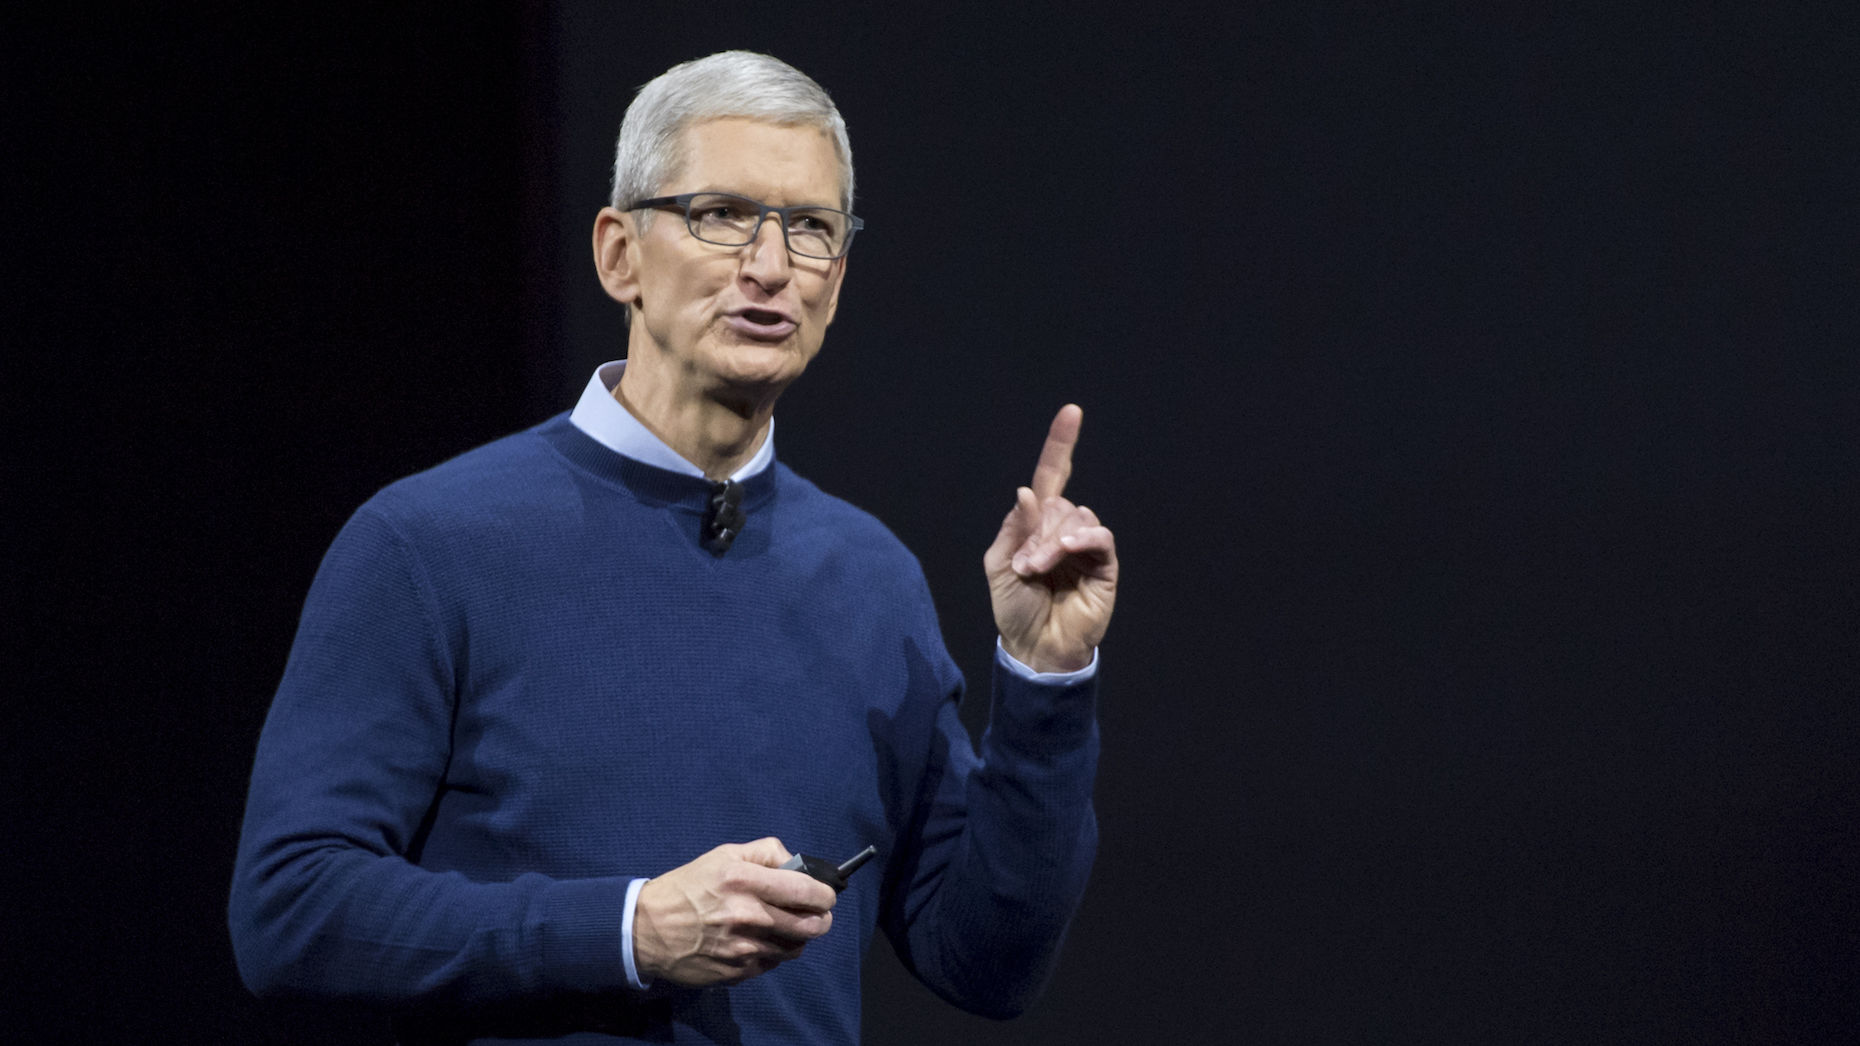 Apple CEO Tim Cook at WWDC. Photo by Bloomberg.